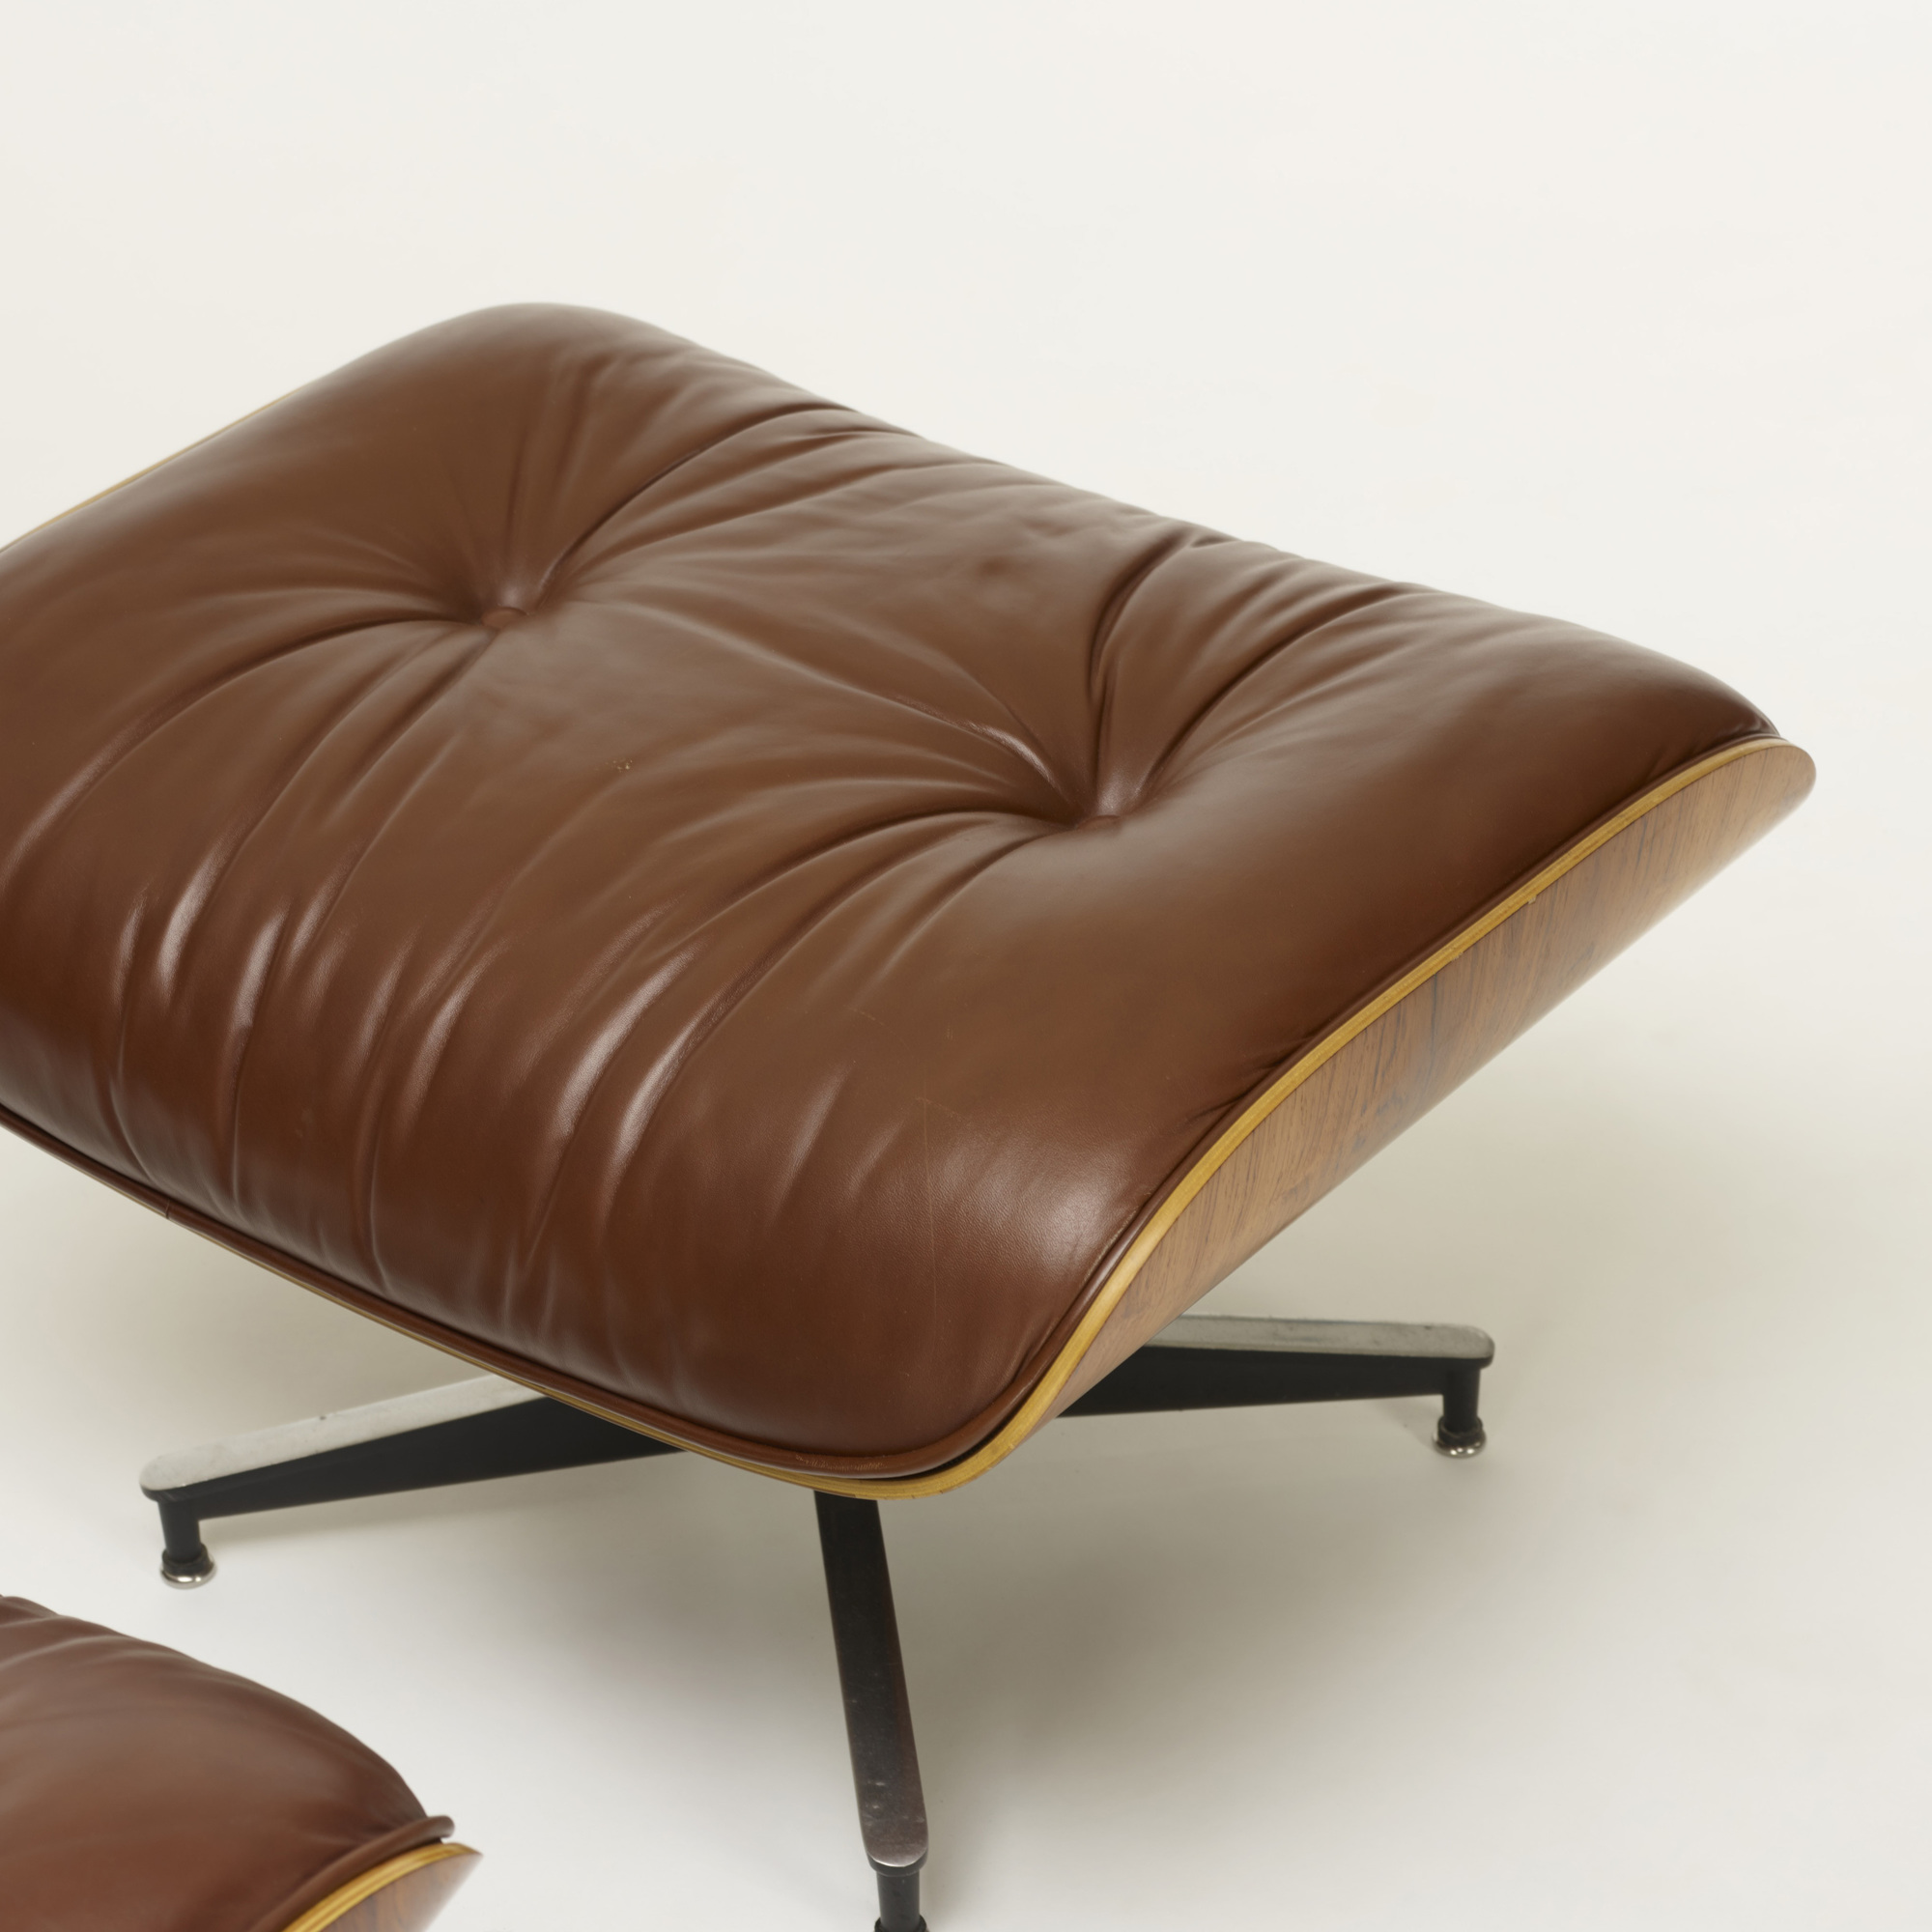 357: Charles and Ray Eames / 670 lounge chair and 671 ottoman (6 of 6)